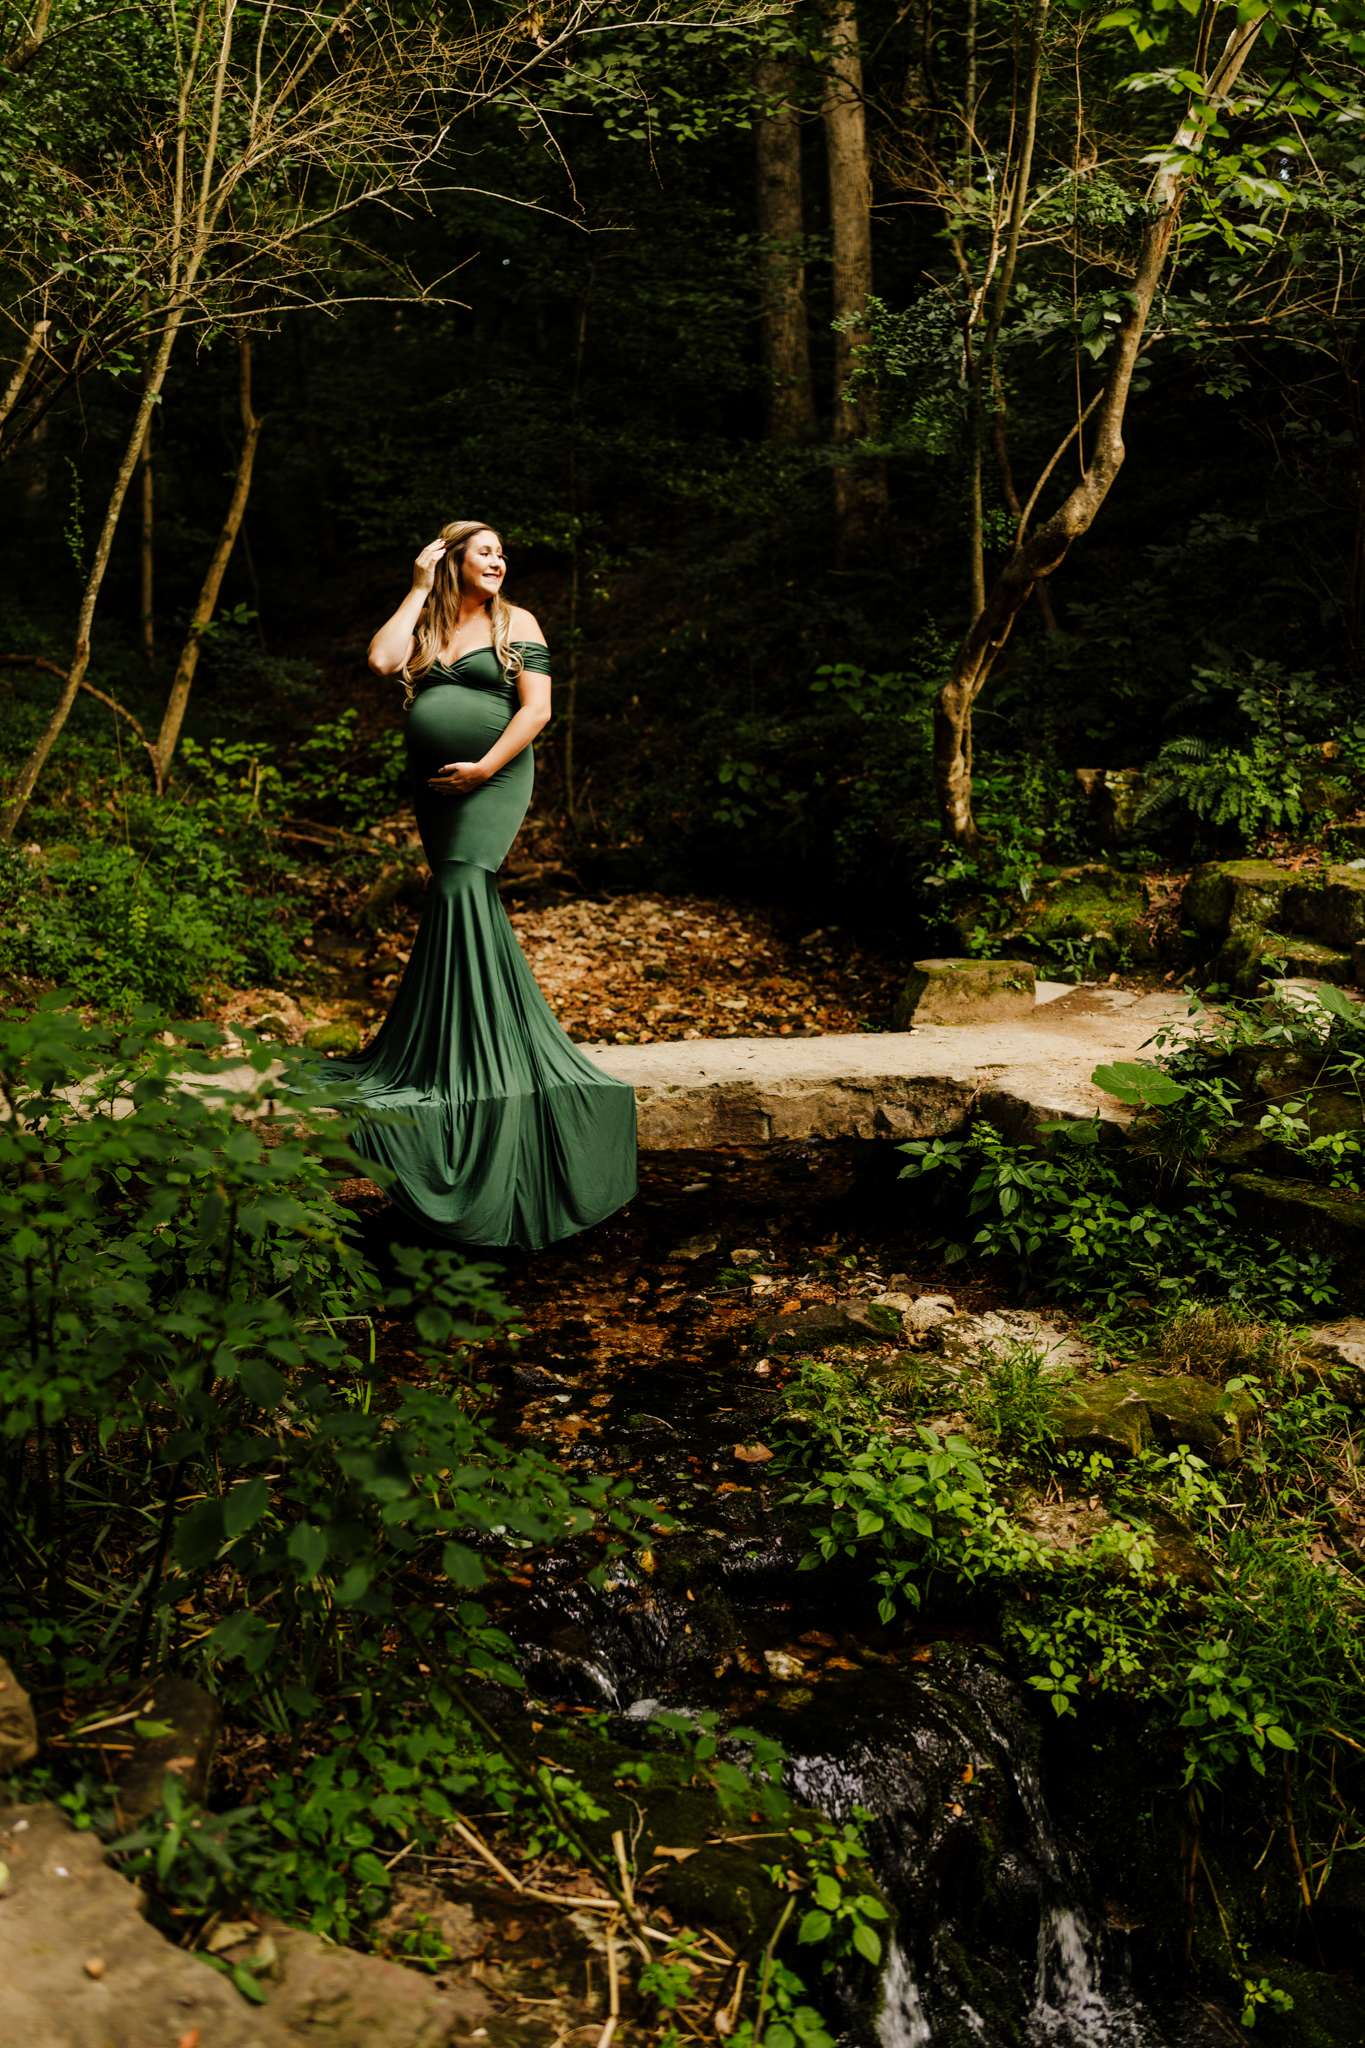 pregnant woman standing on stone bridge in wooded area in dark green dress